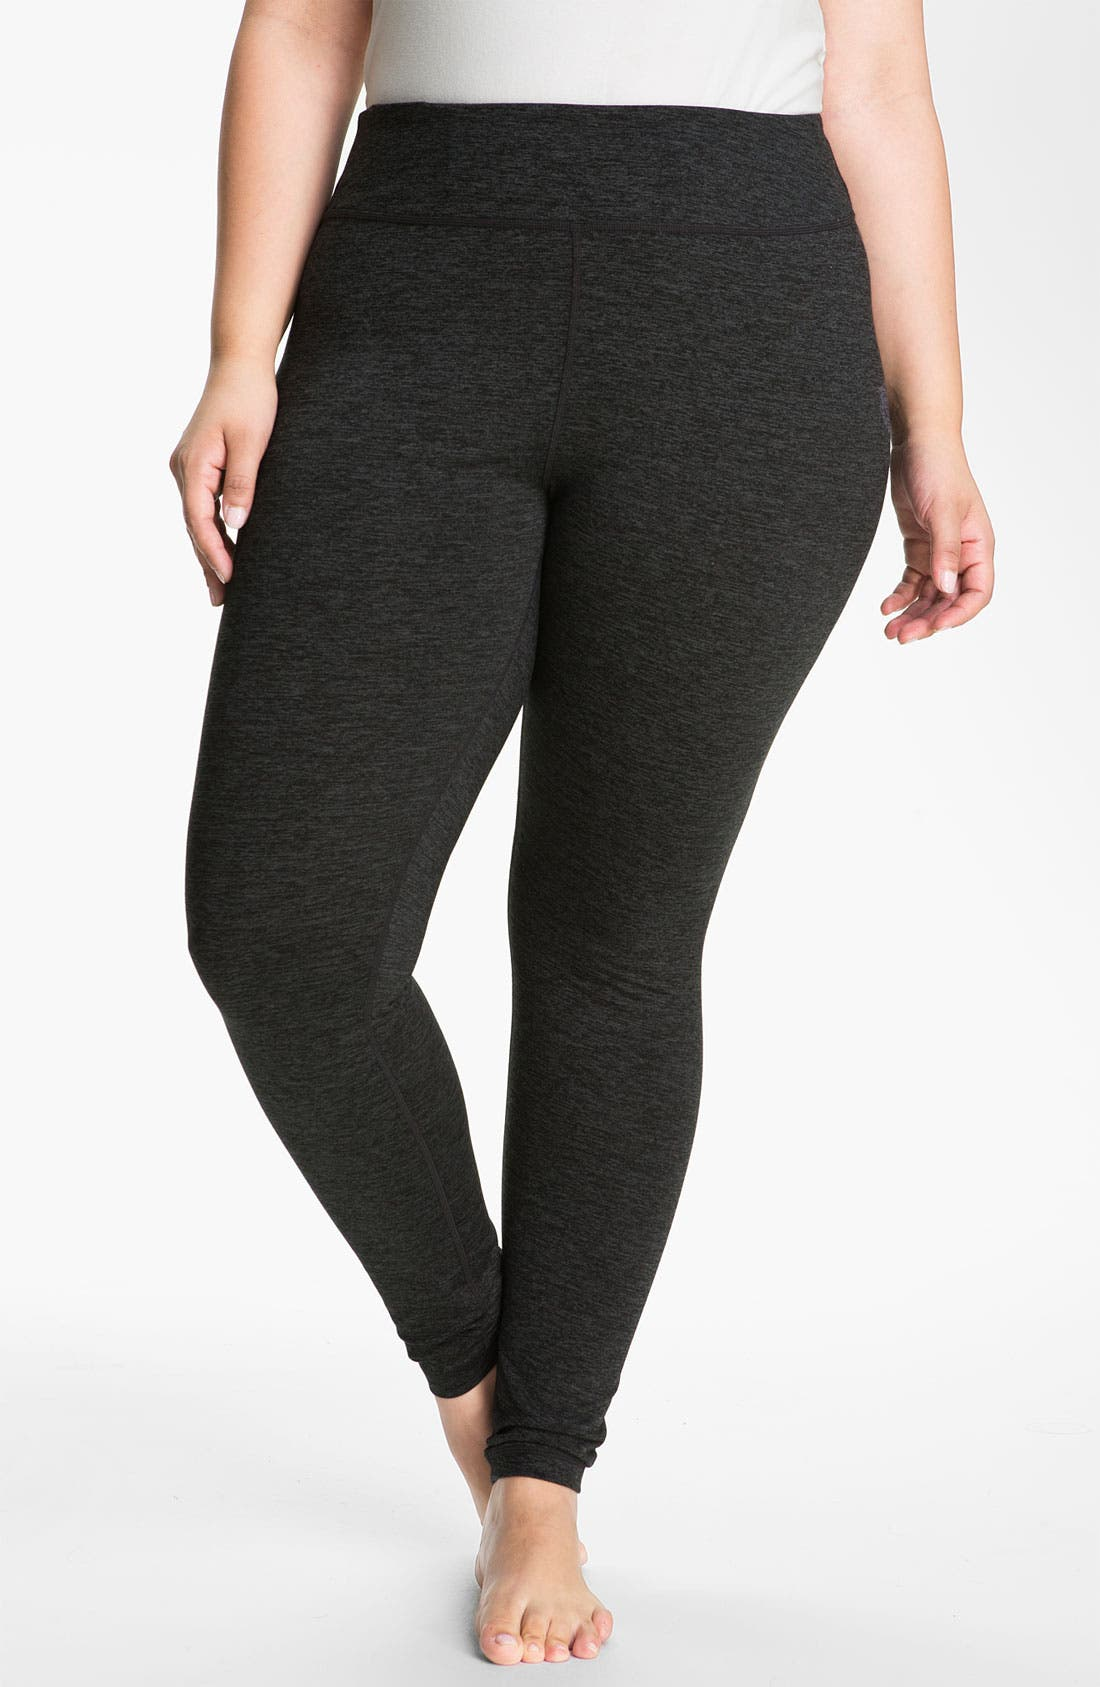 Alternate Image 1 Selected - Zella 'Live In' Cross Dye Leggings (Plus Size)